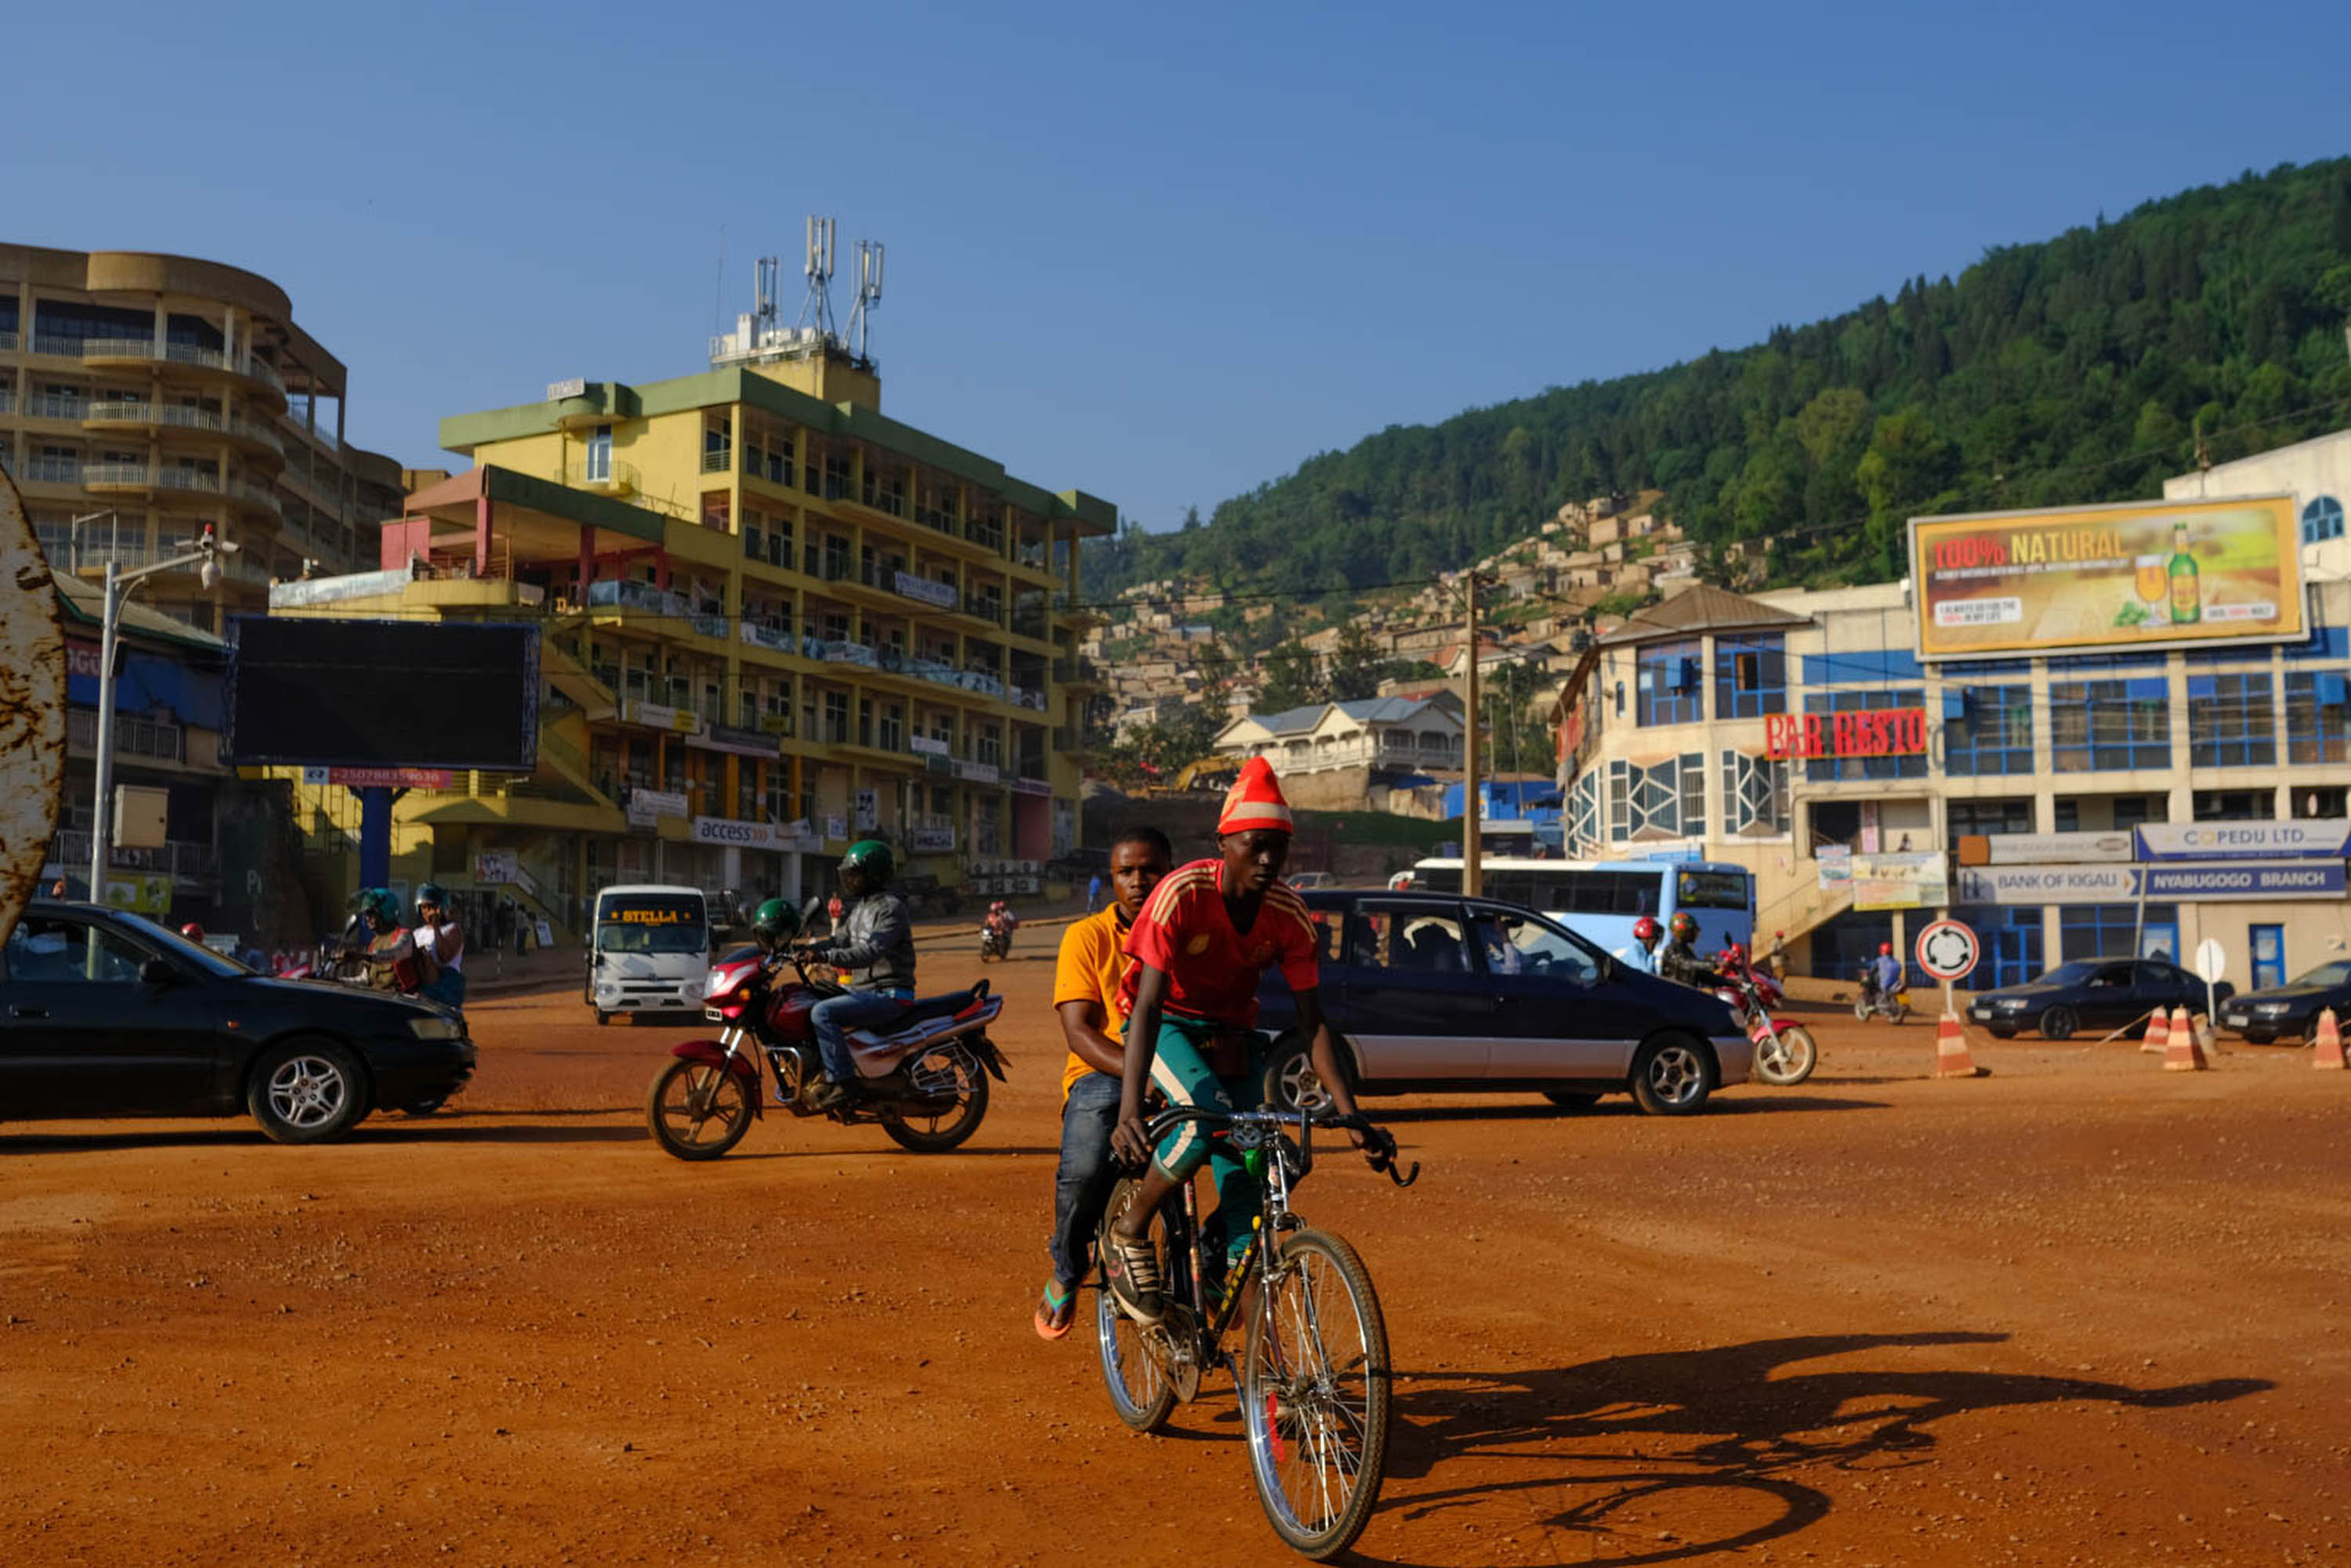 Early morning traffic near Kigali's Nyabugogo bus station.